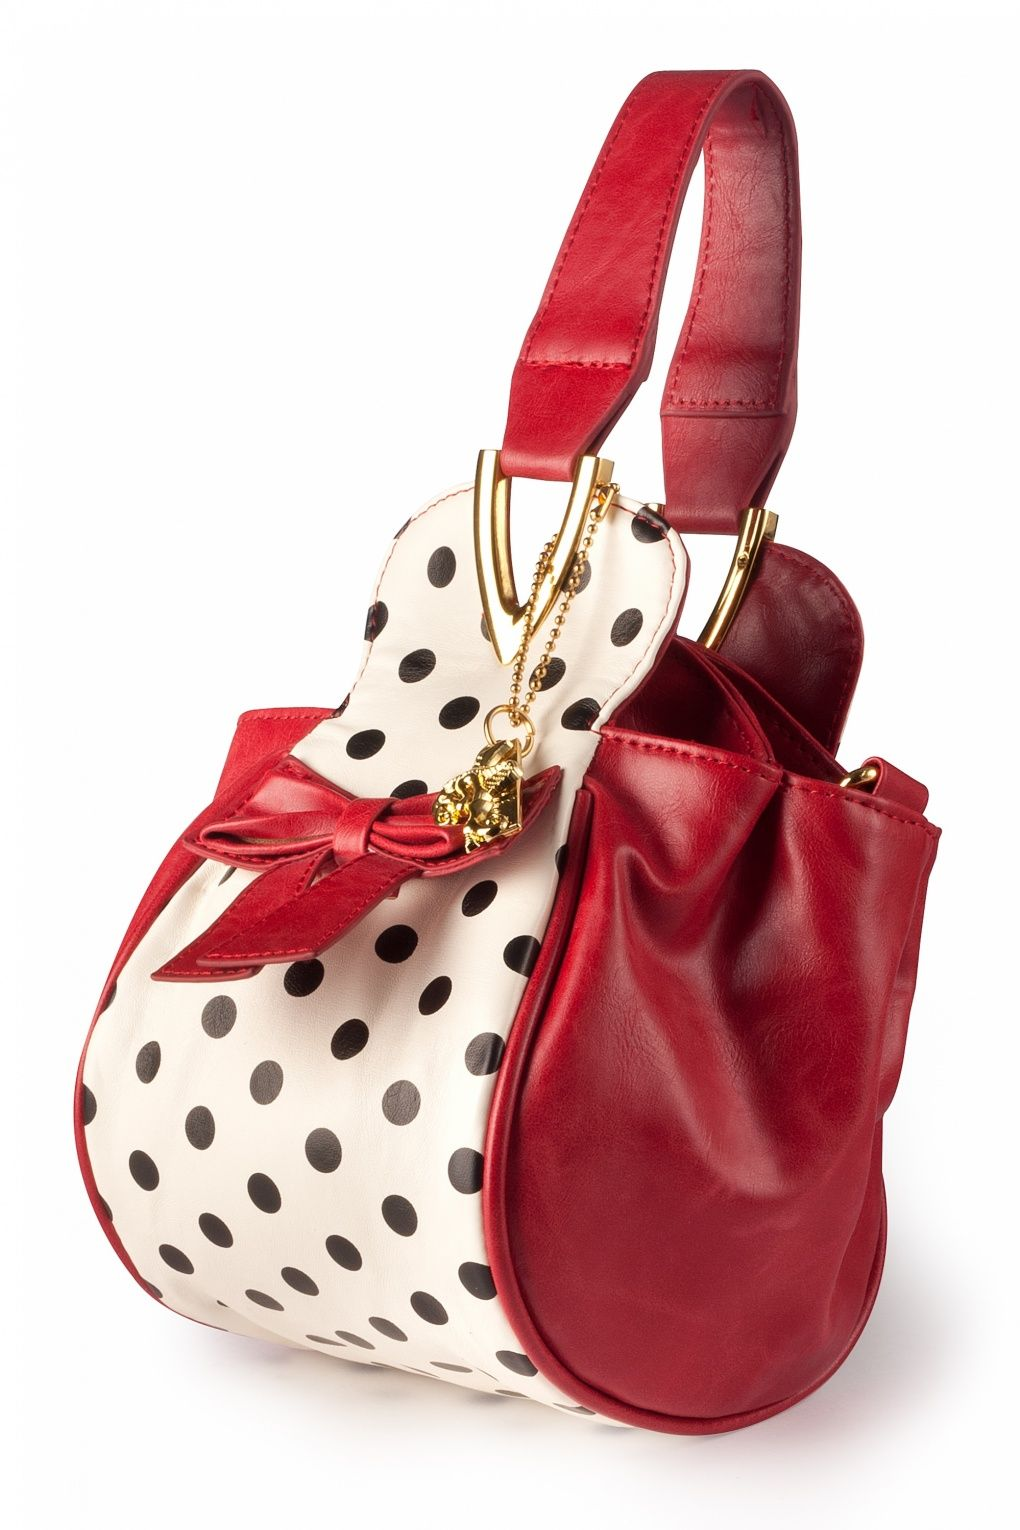 Bolso bandolera Boatie Red White Black Polka Dot  – Bolsa